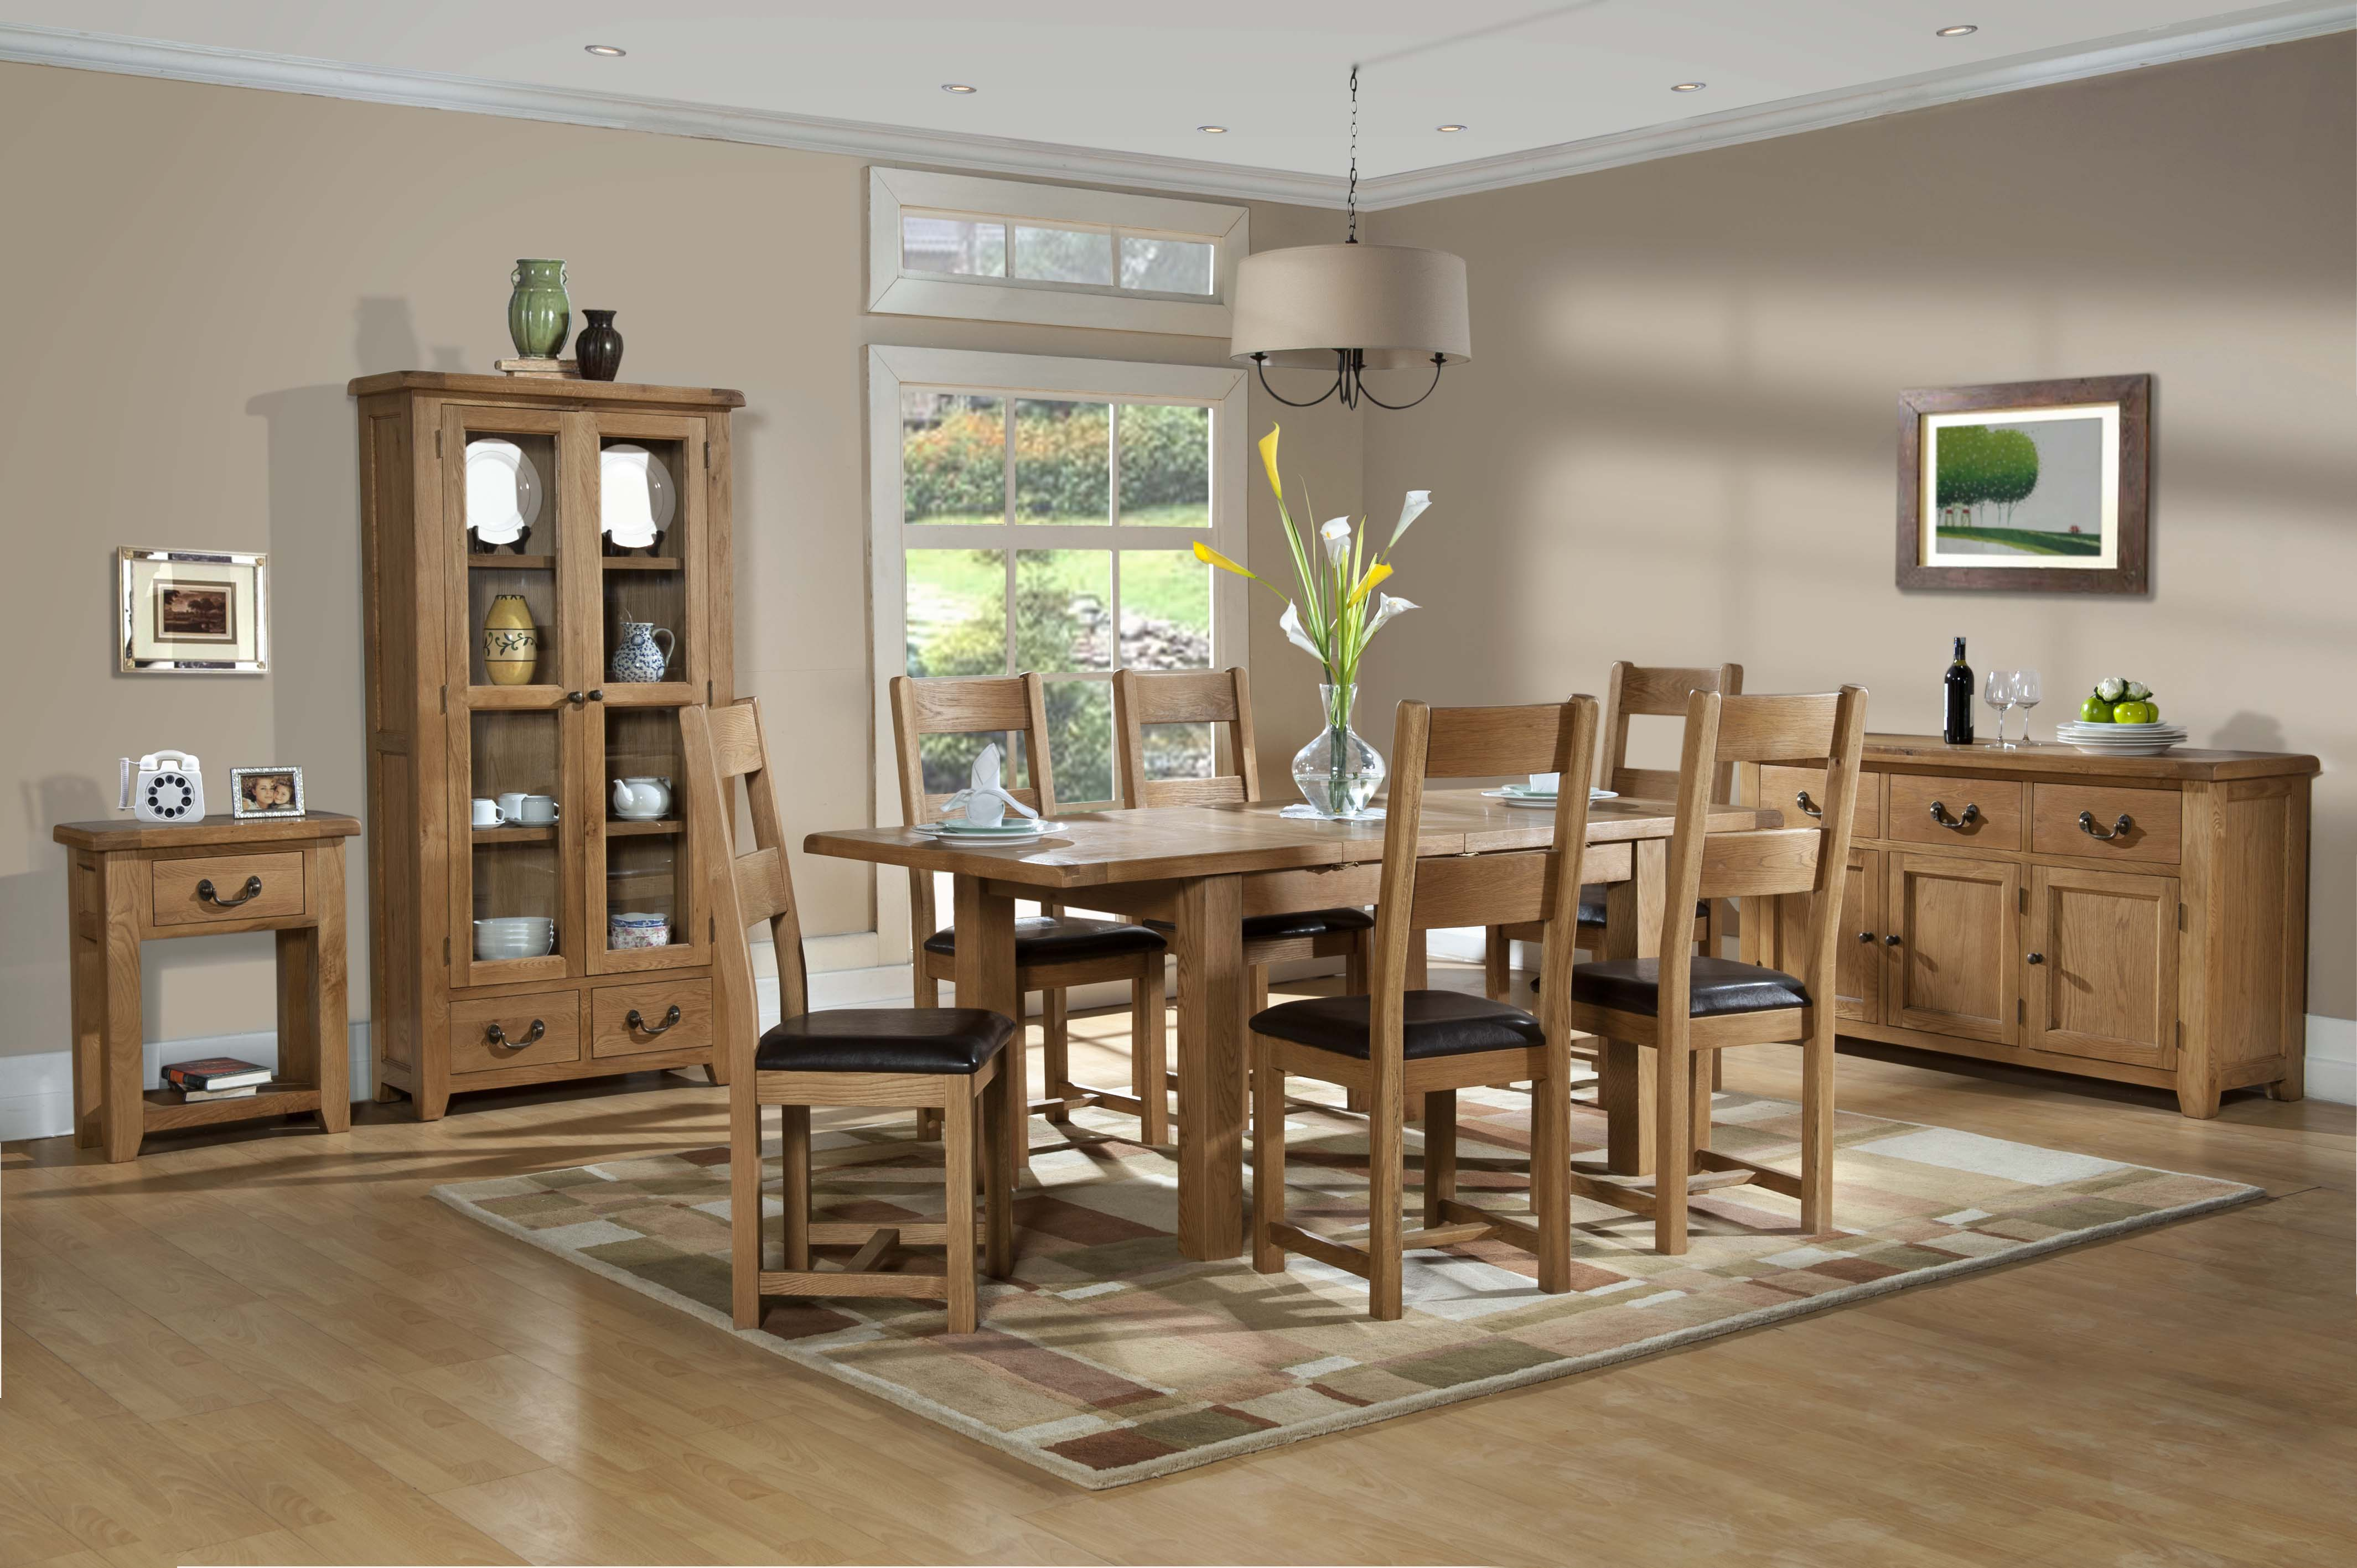 Devonshire Pine - SUMMERFIELD - Living & Dining